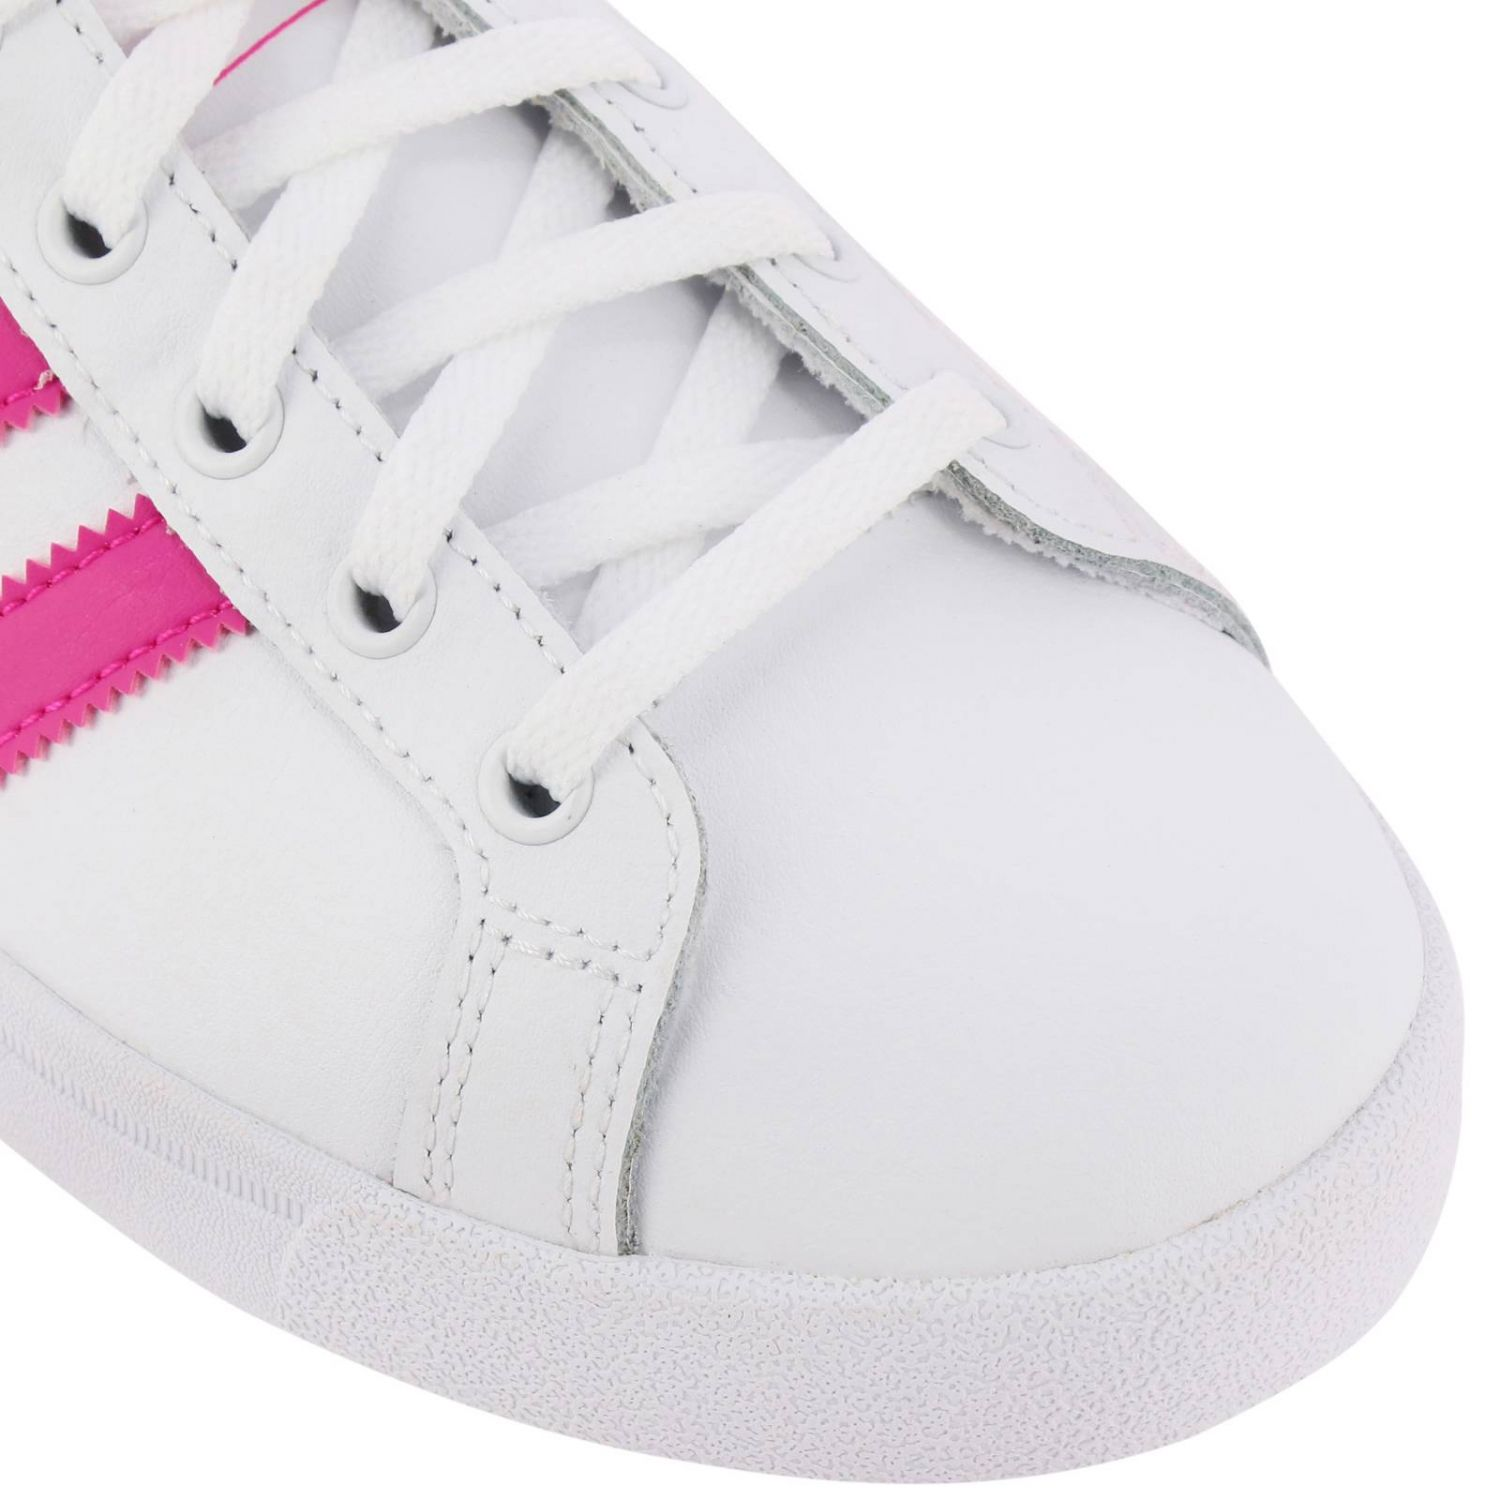 Scarpe Adidas Originals: Sneakers Coast star J Adidas Originals in pelle con bande a contrasto bianco 3